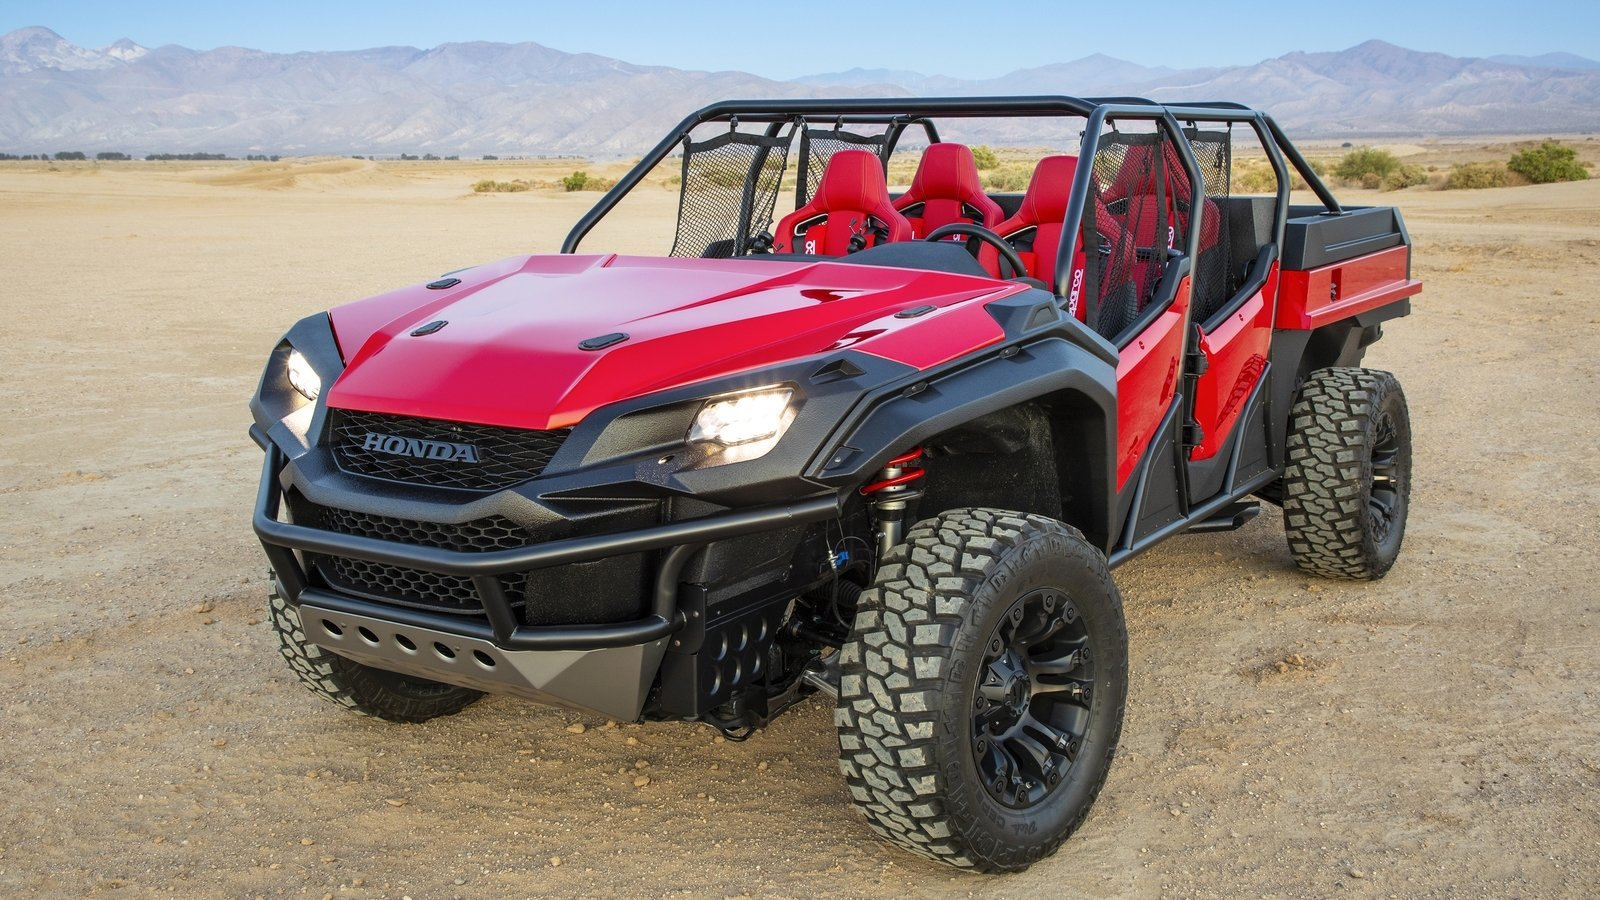 2018 Honda Rugged Open Air Vehicle Concept | Top Speed